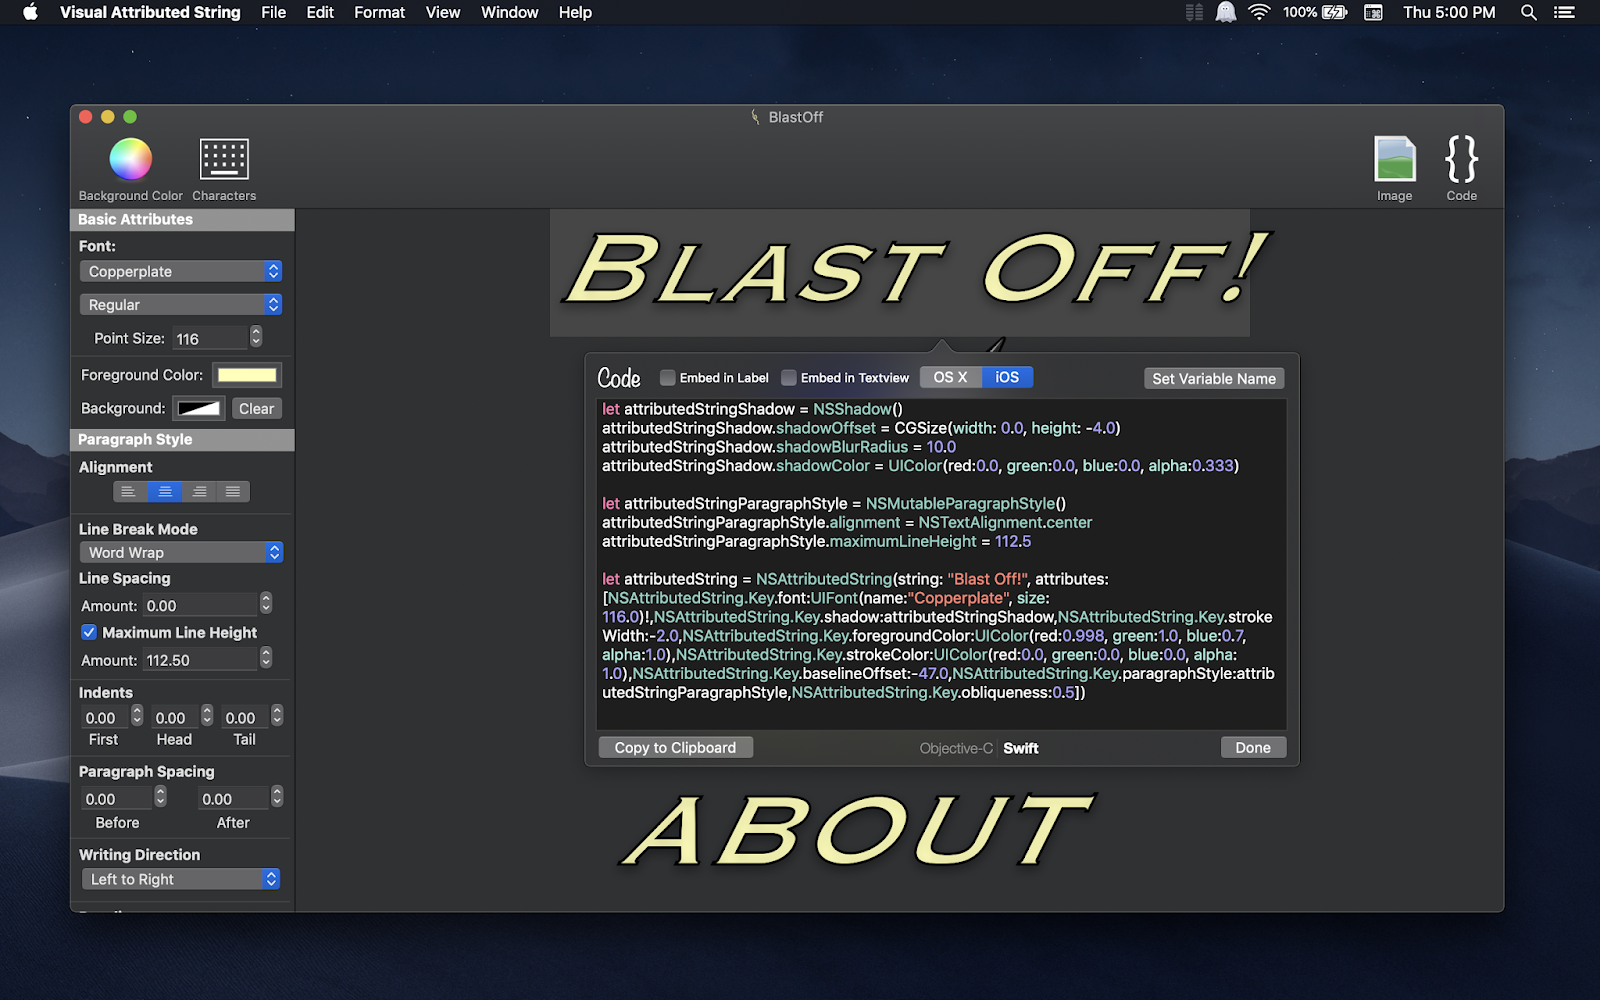 Visual Attributed String Mac app screenshot in Dark Mode on macOS Mojave with generated code popover displayed.